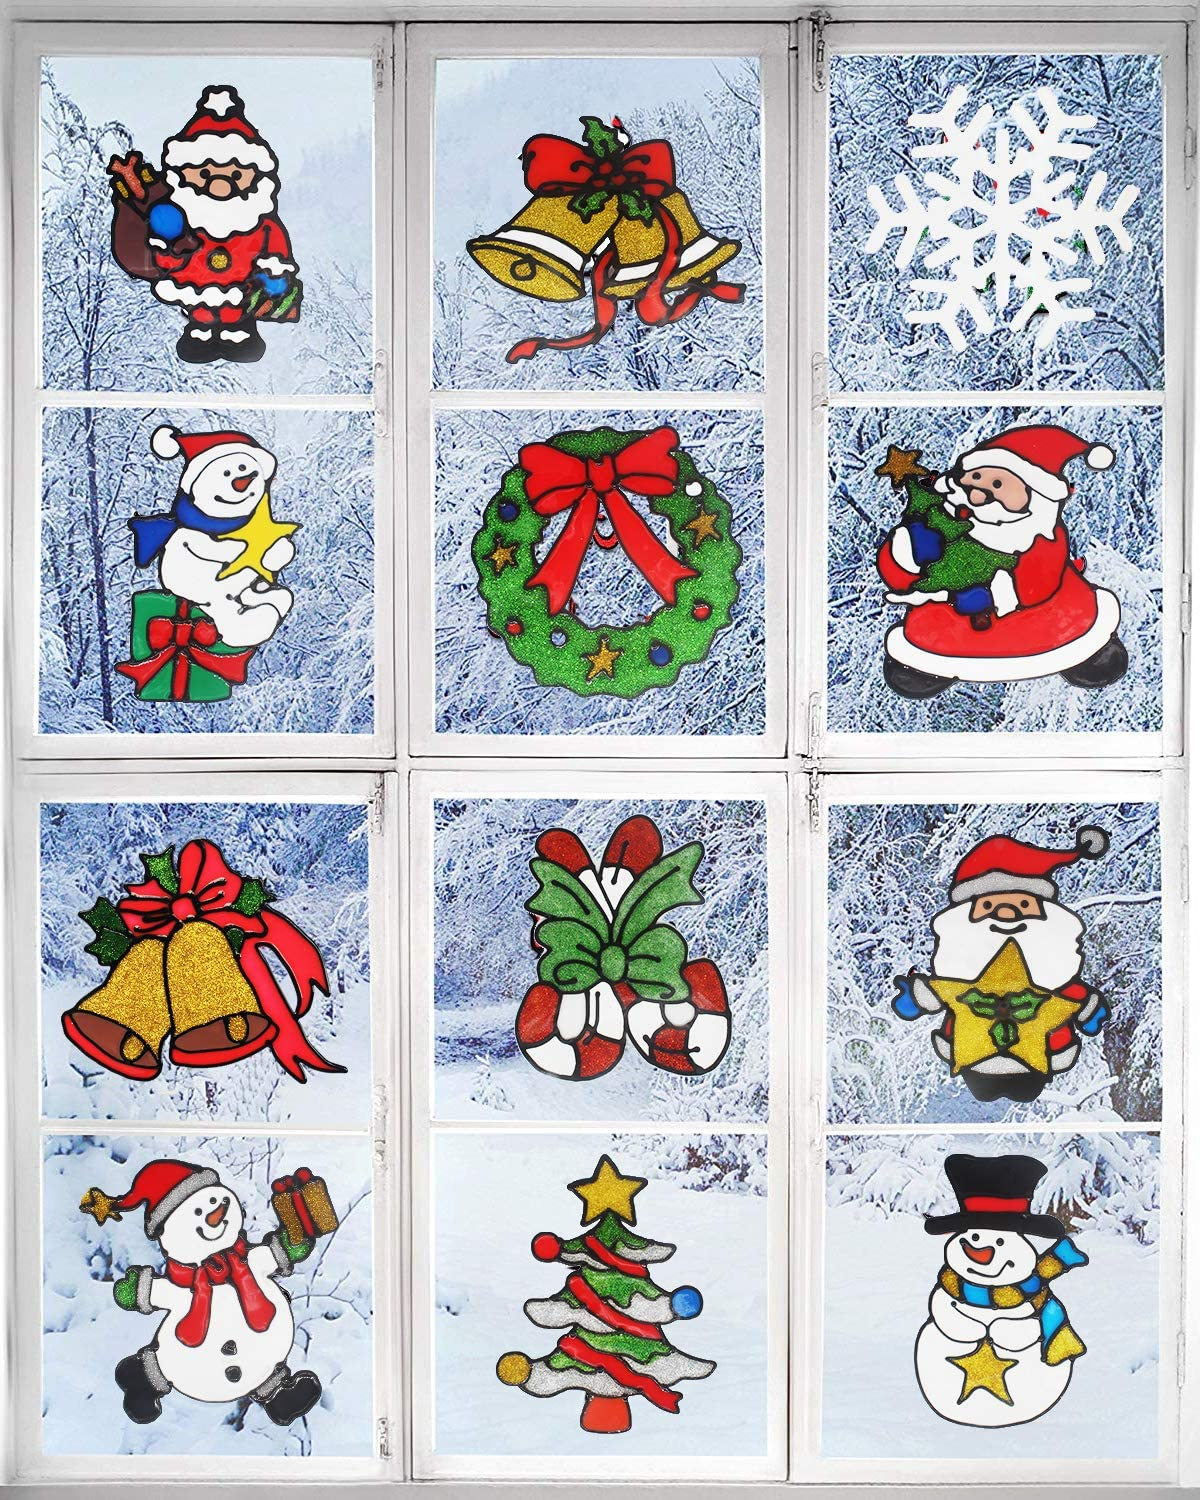 Benvo 12 Pack Christmas Decorations Holiday Window Clings Stickers Include Cute Santa Claus, Snowman, Christmas Tree, Bells, Snowflake, Candy Cane for Window Decor Xmas Festive Decorations